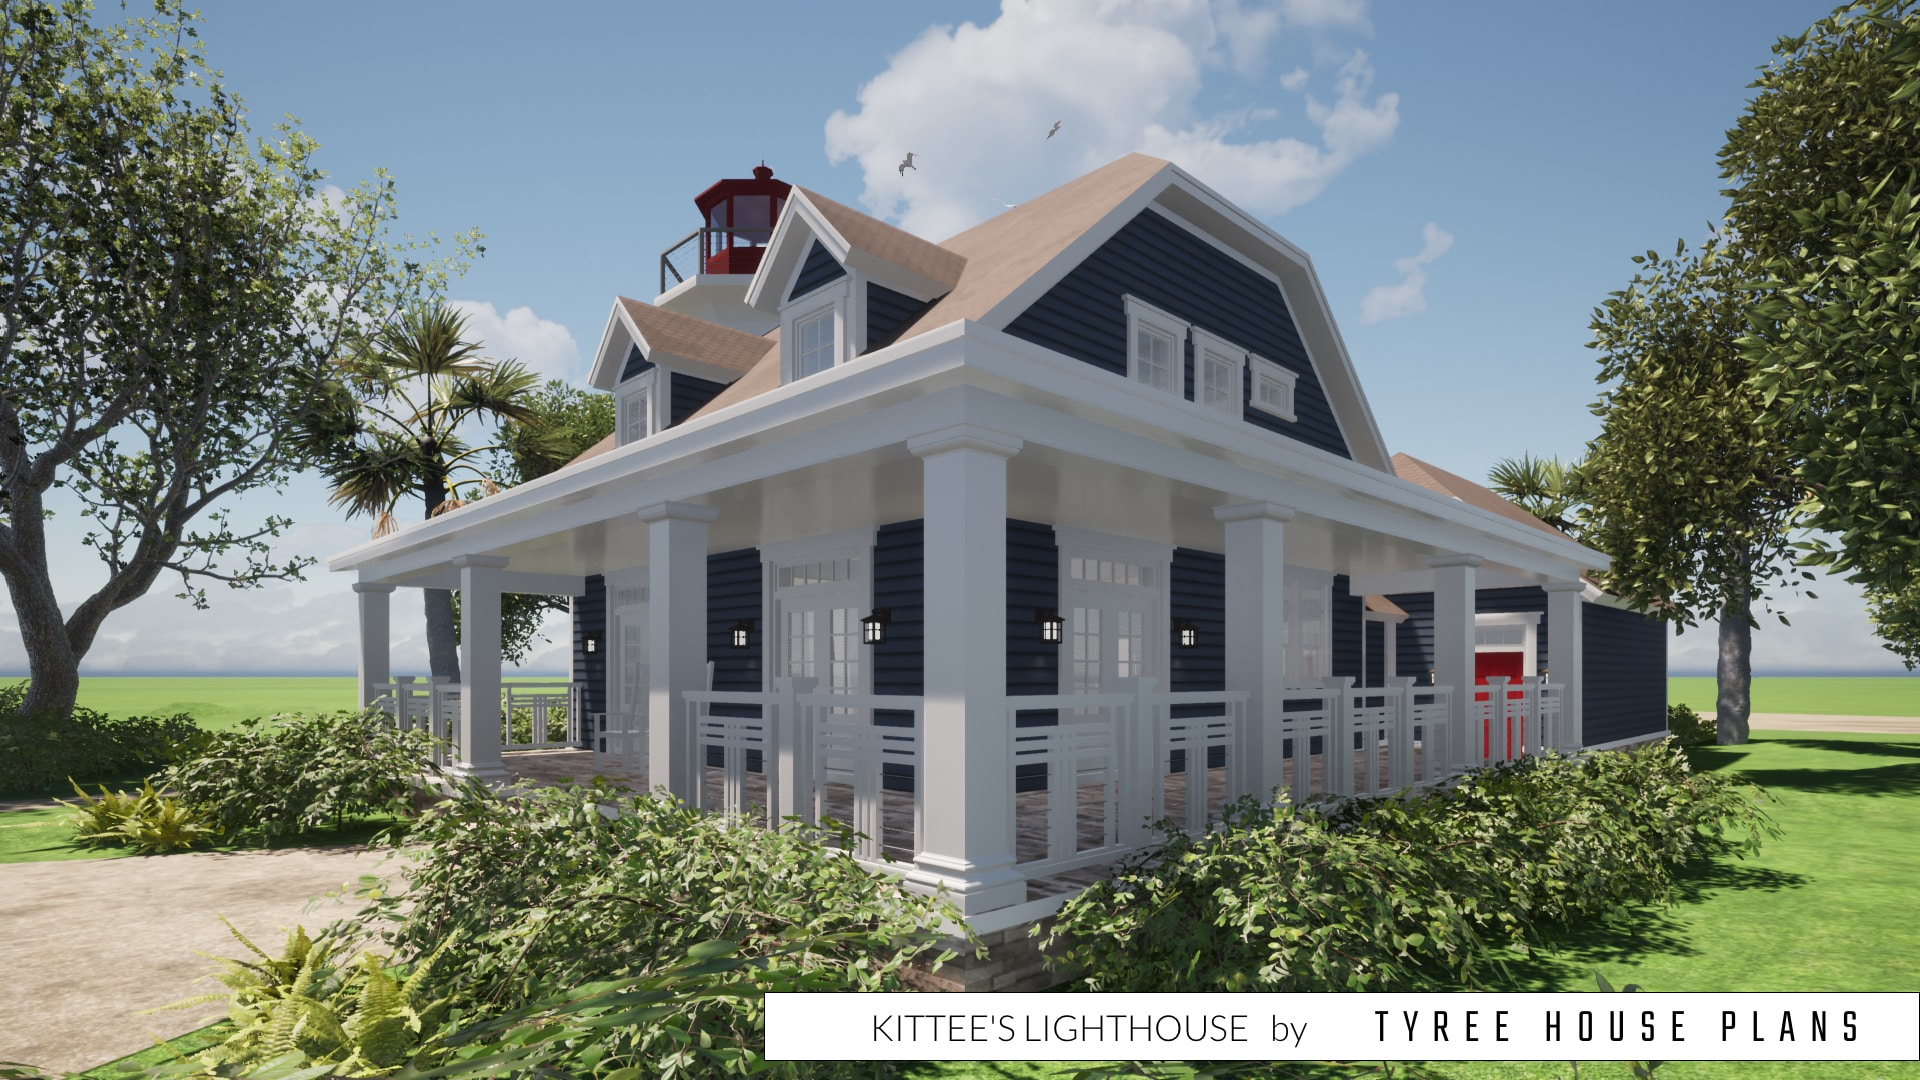 Kittee's Lighthouse Plan by Tyree House Plans